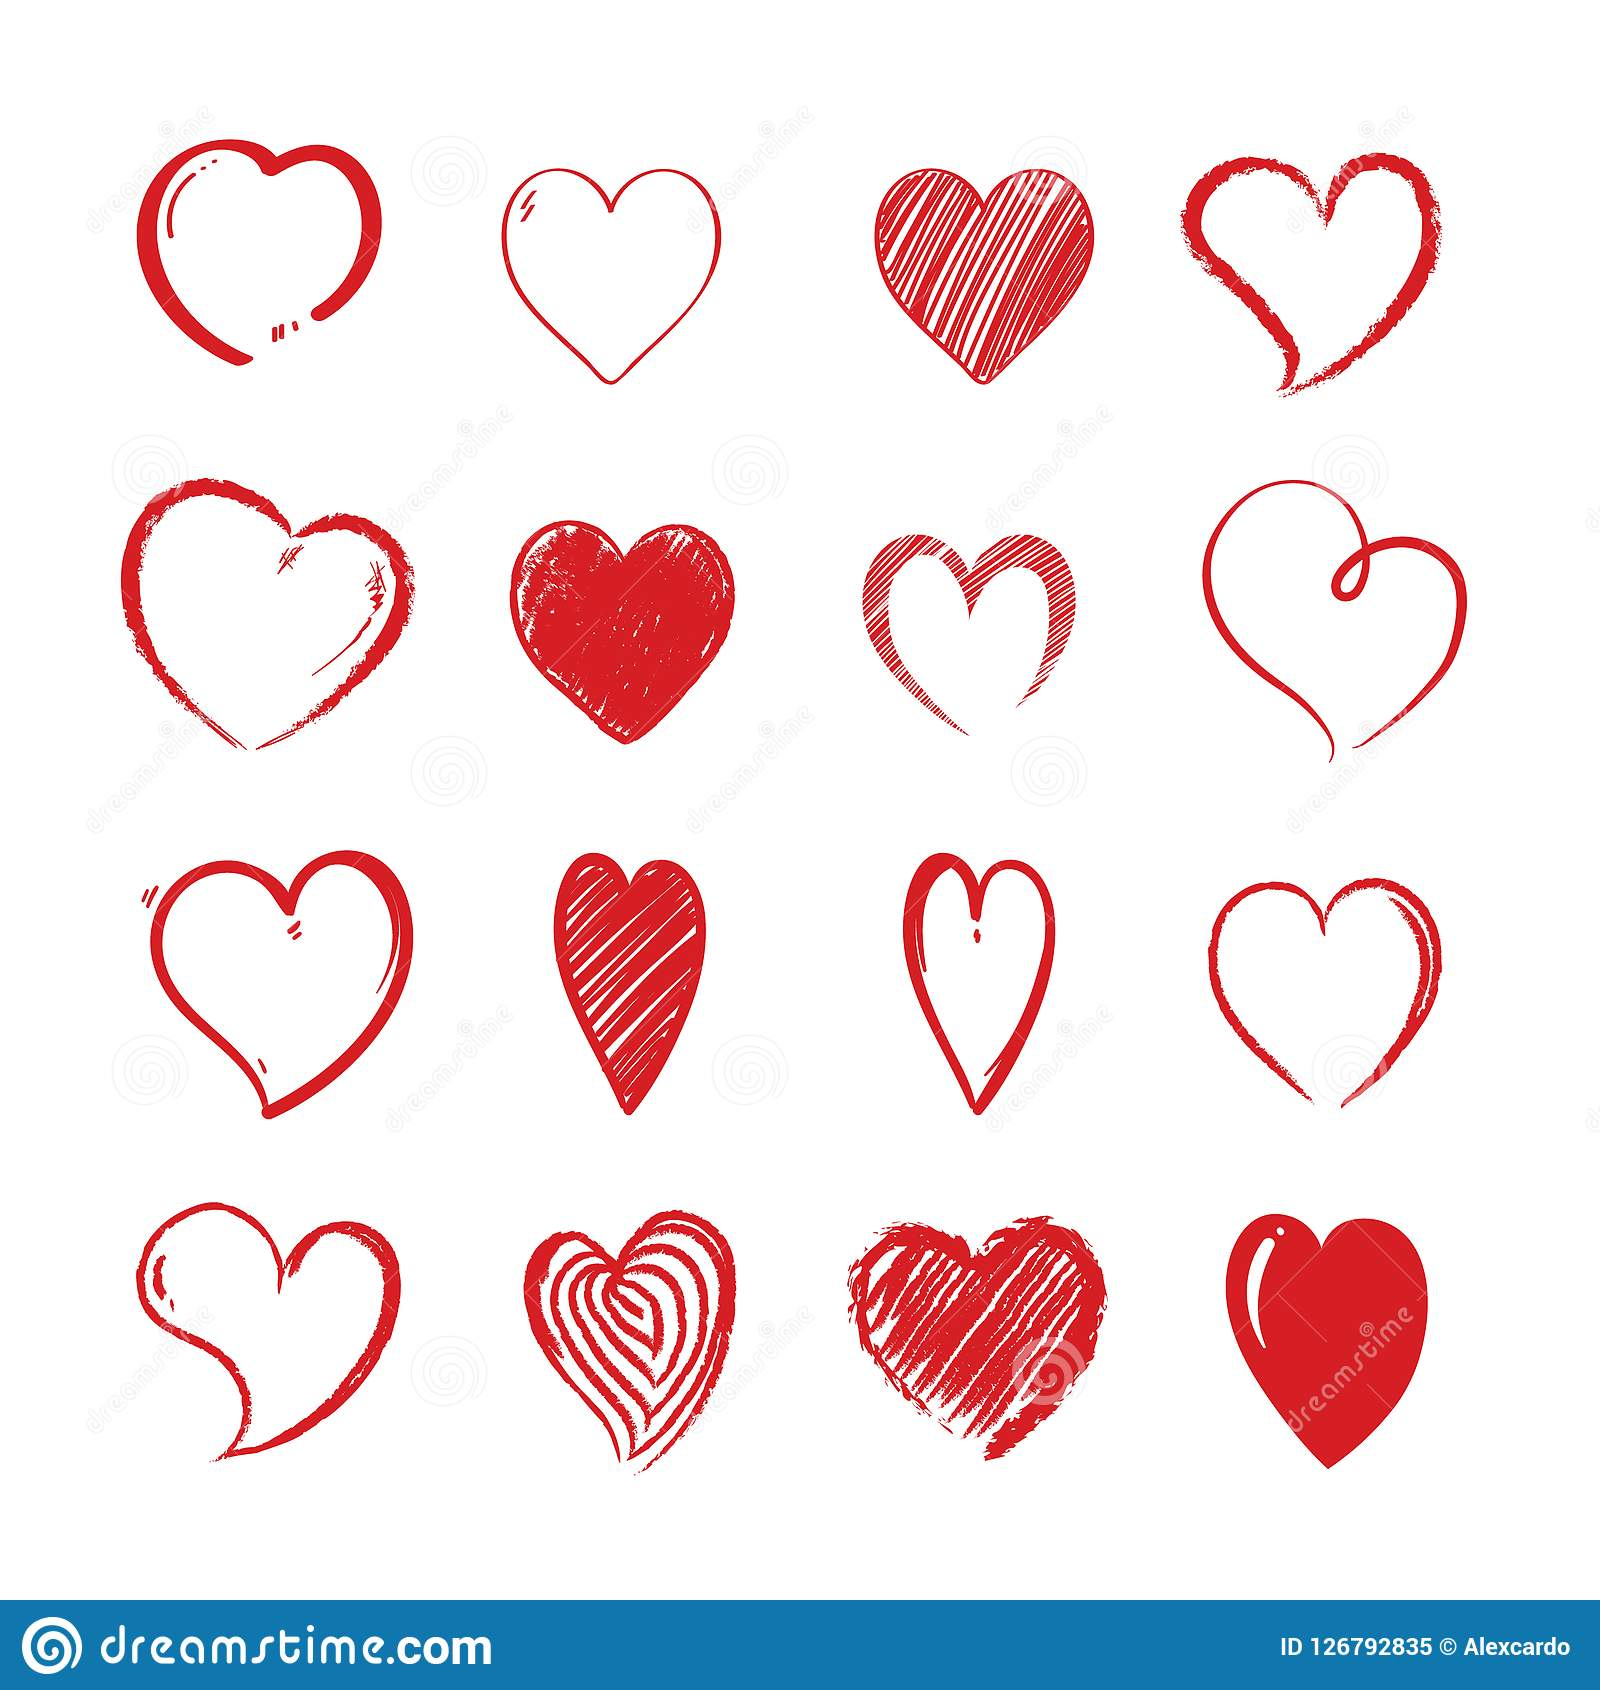 Love Hearts Shapes Decorative Valentines Day Lovely Stock